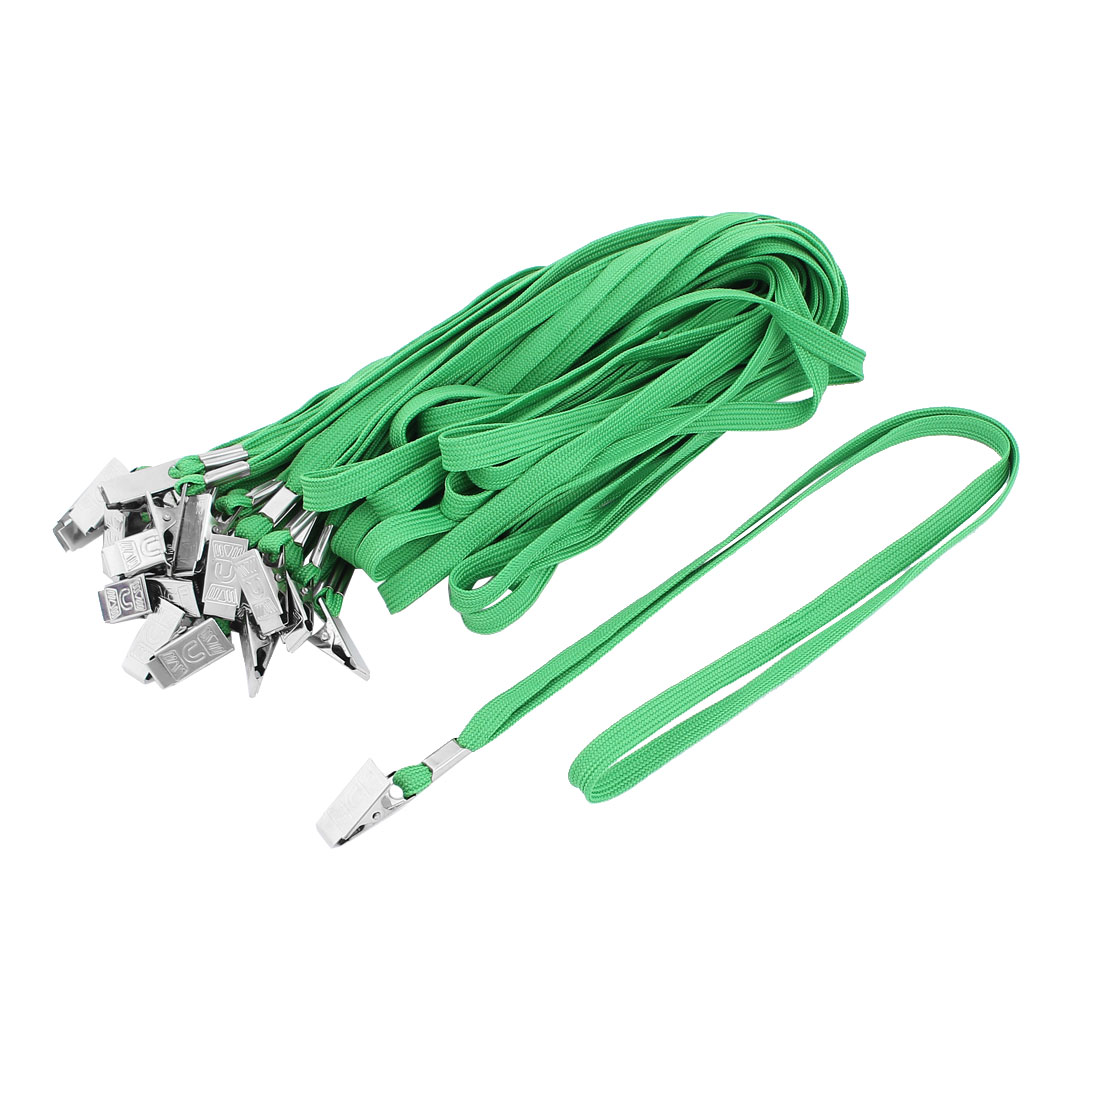 Unique Bargains 2 Pcs Neck Strap ID Card Badge Holder Lanyard School Office Bank Students Stationery Green